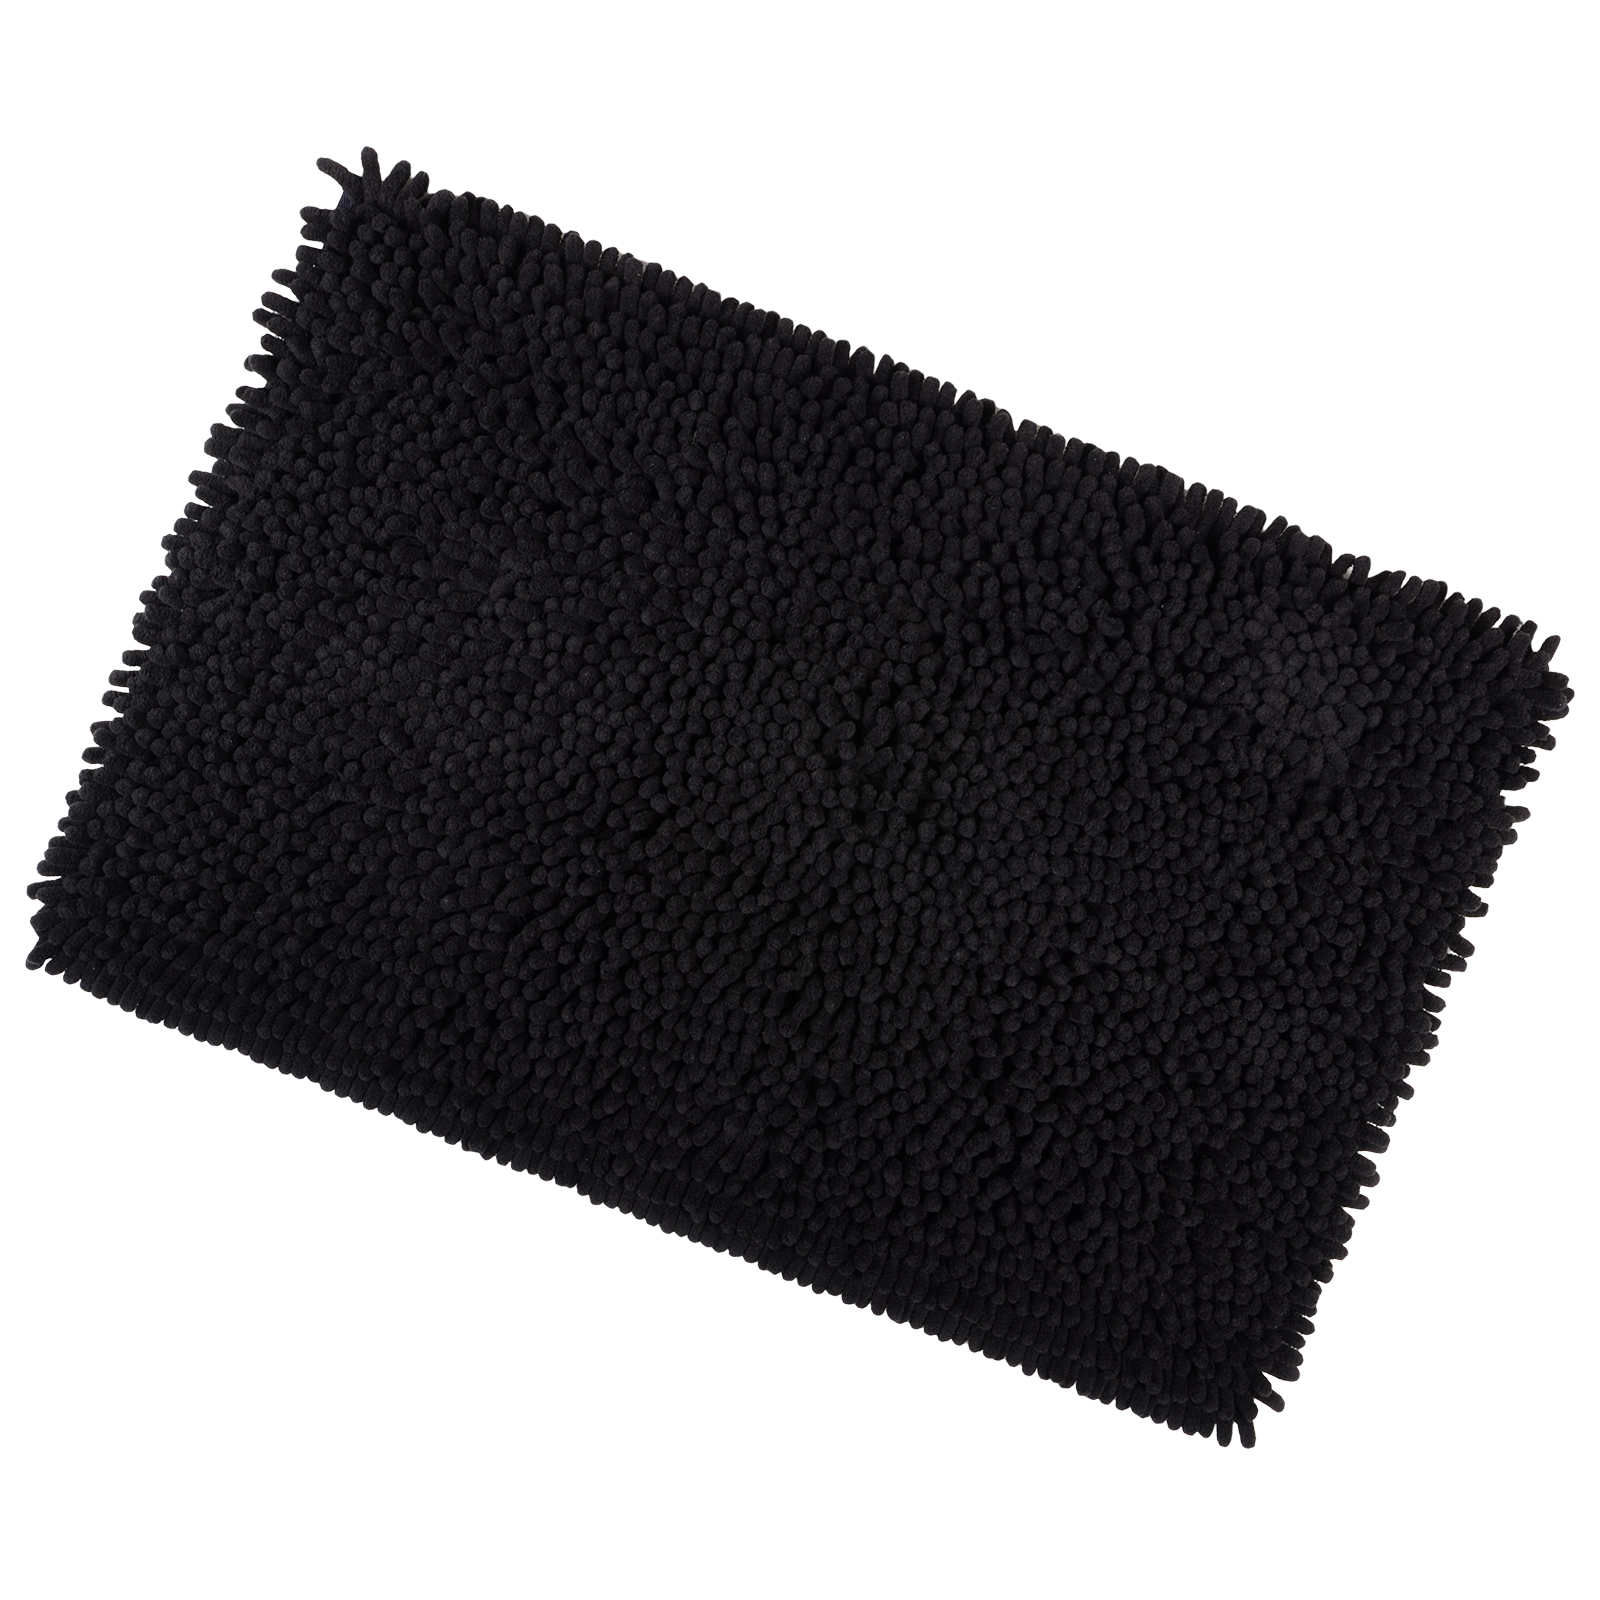 40x60cm Black Shaggy Microfibre Shower Bath Mat Rug Non Slip Backing Bamboobliss